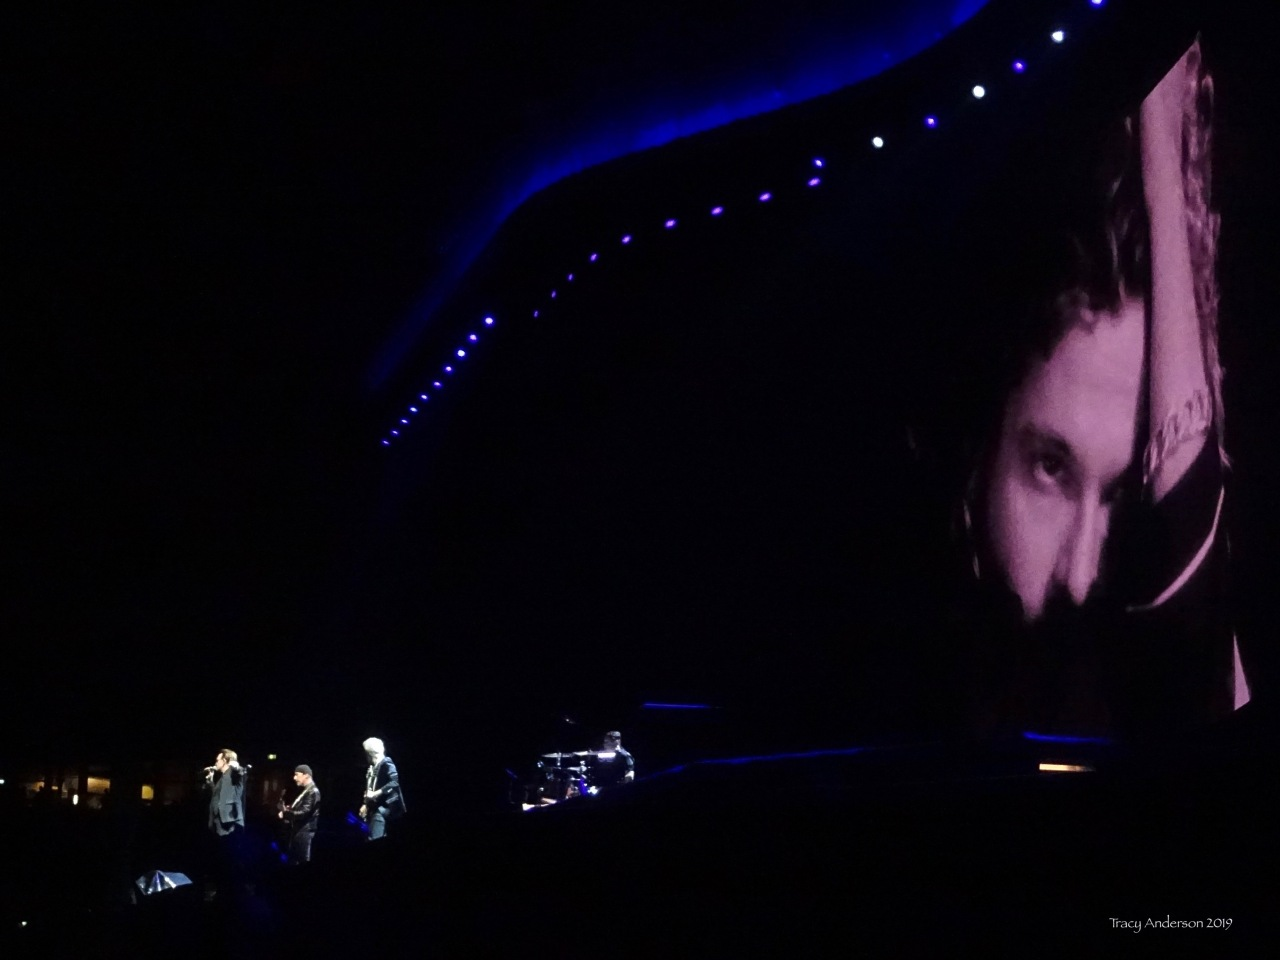 Celebrating Michael Hutchence Stuck in A Moment U2 The Joshua Tree Tour Sydney Nov 22 2019